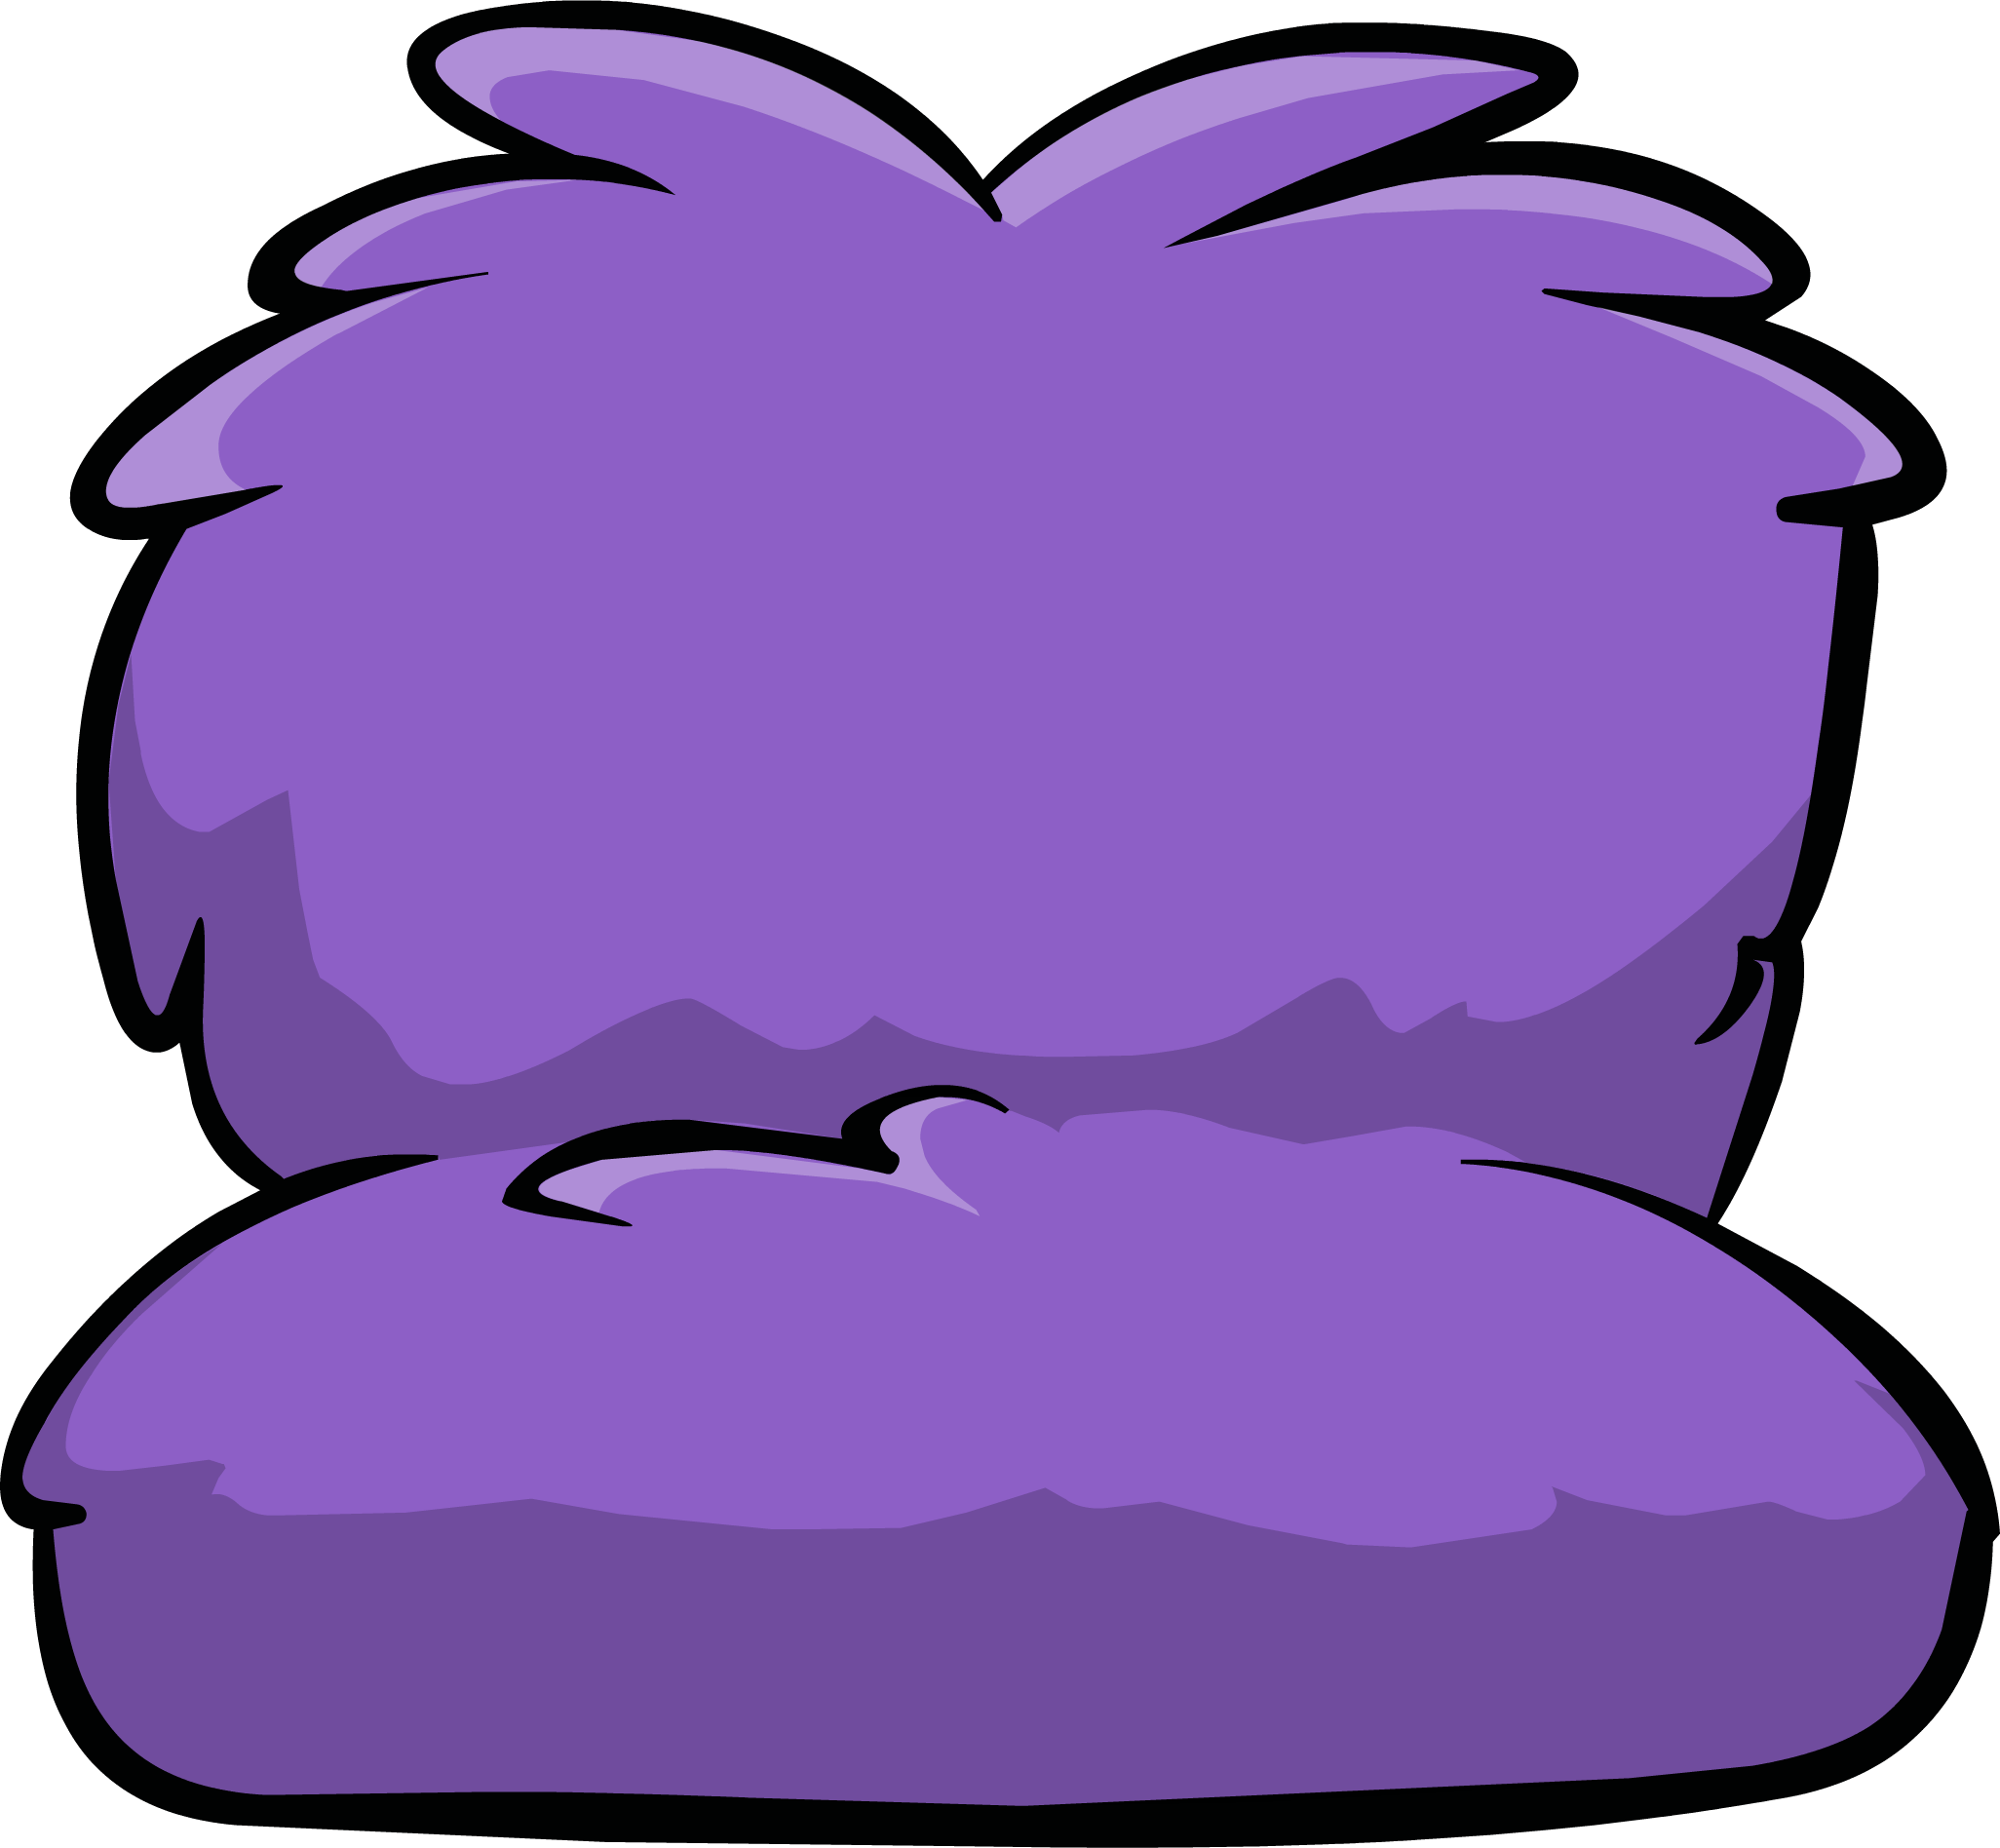 Fuzzy club penguin wiki. Couch clipart purple couch